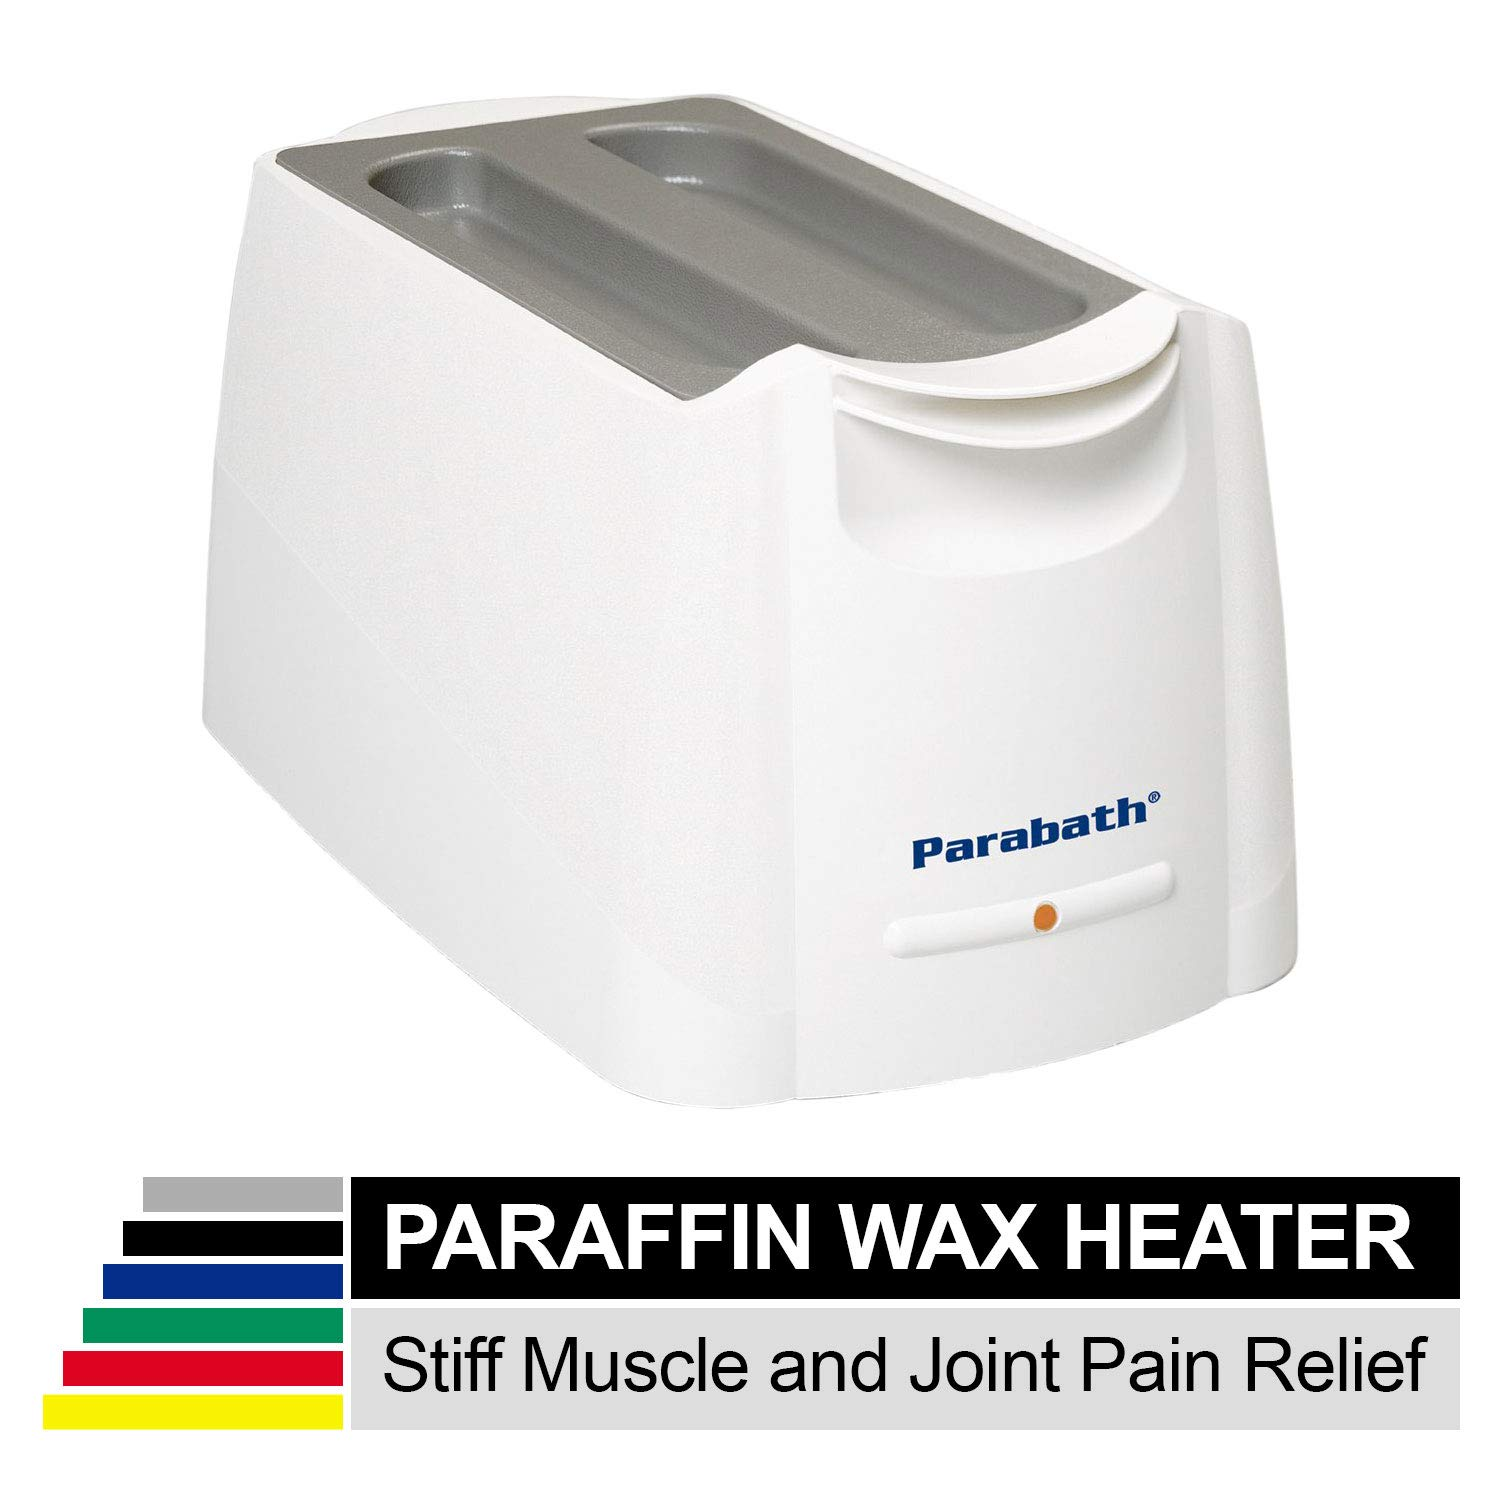 Parabath Paraffin Wax Bath, Large Wax Warmer for Heat Therapy, Wax Melter Works to Relieve Pain for Feet, Hands, Arthritis, Large TheraBand Paraffin Wax Dip Heating Machine by Parabath